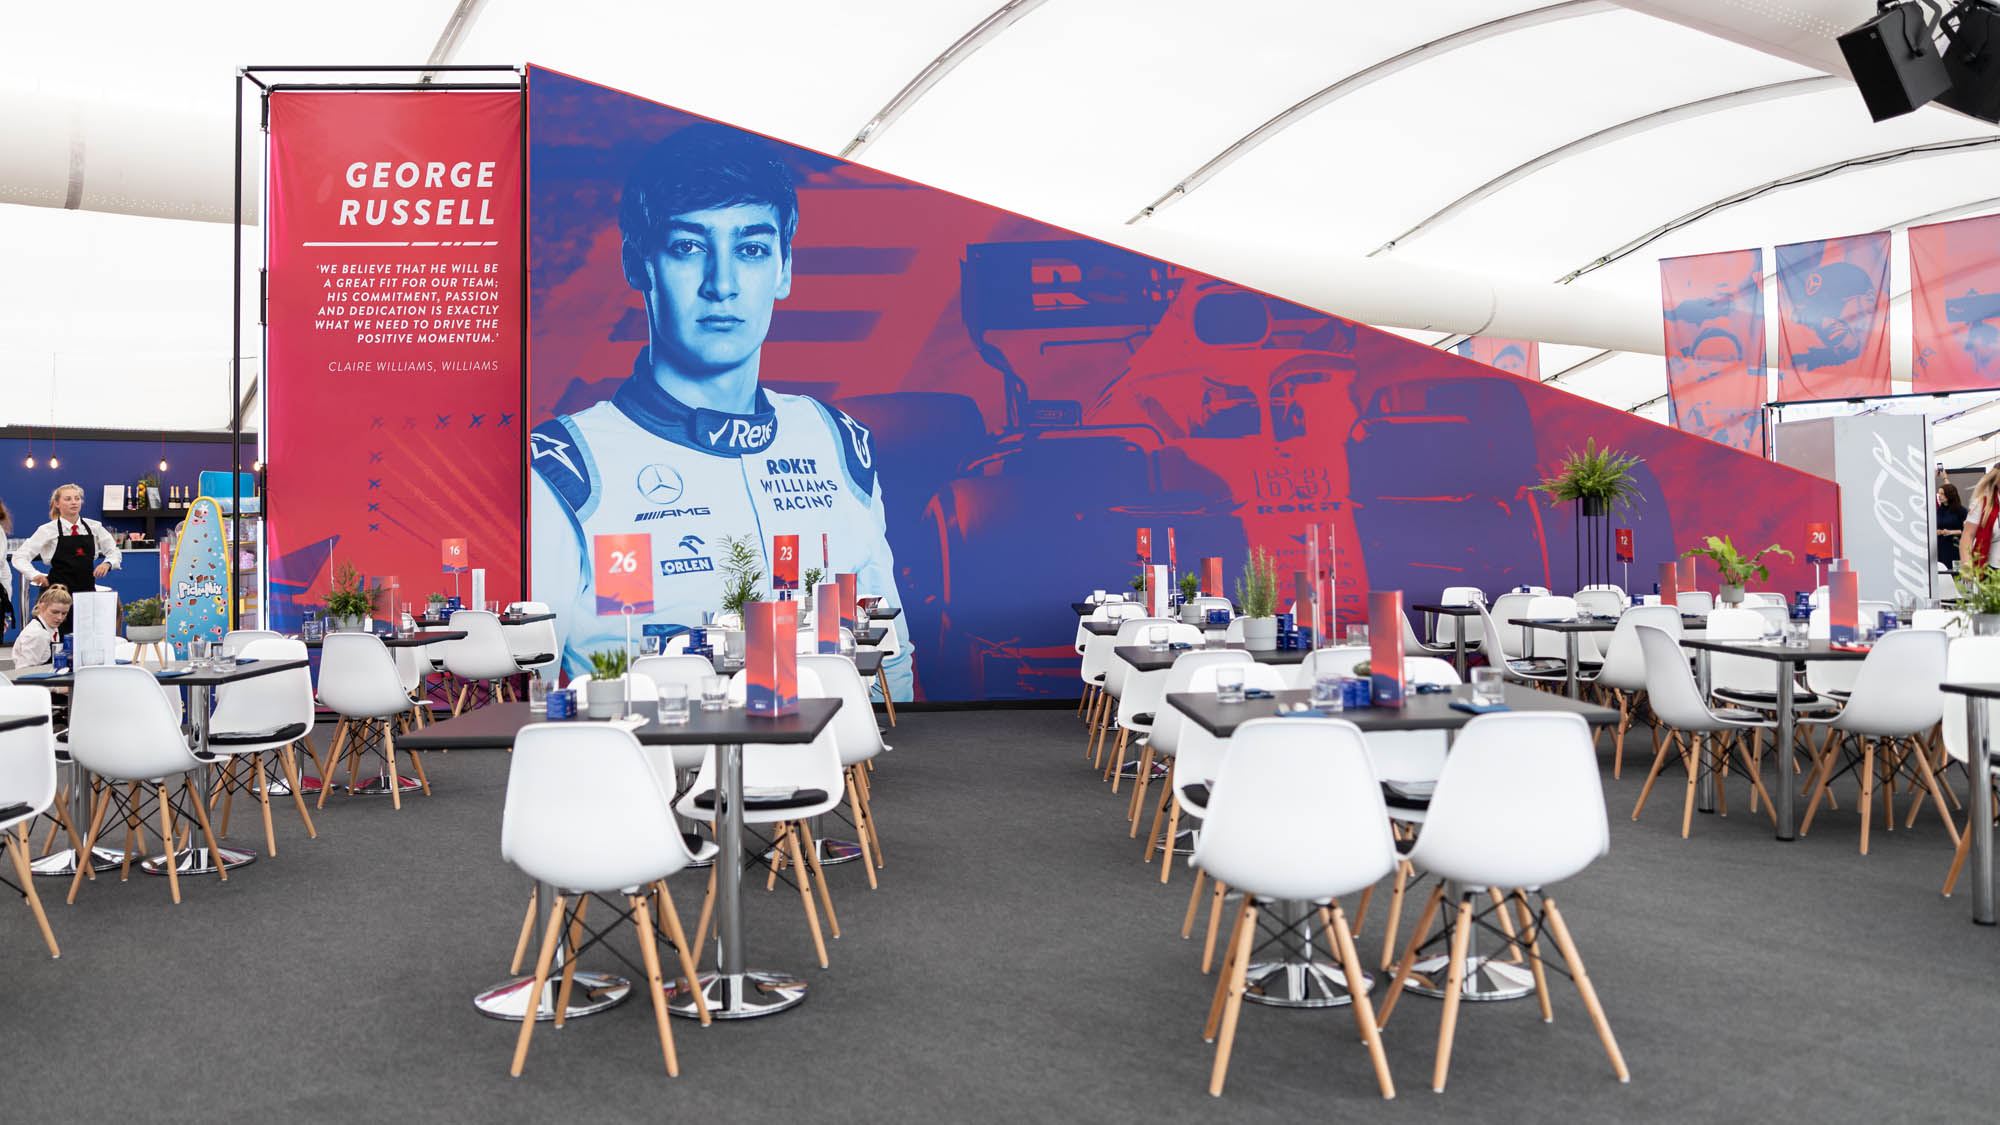 190720_Silverstone_2019_02_Drivers Lounge_Interior-53.jpg